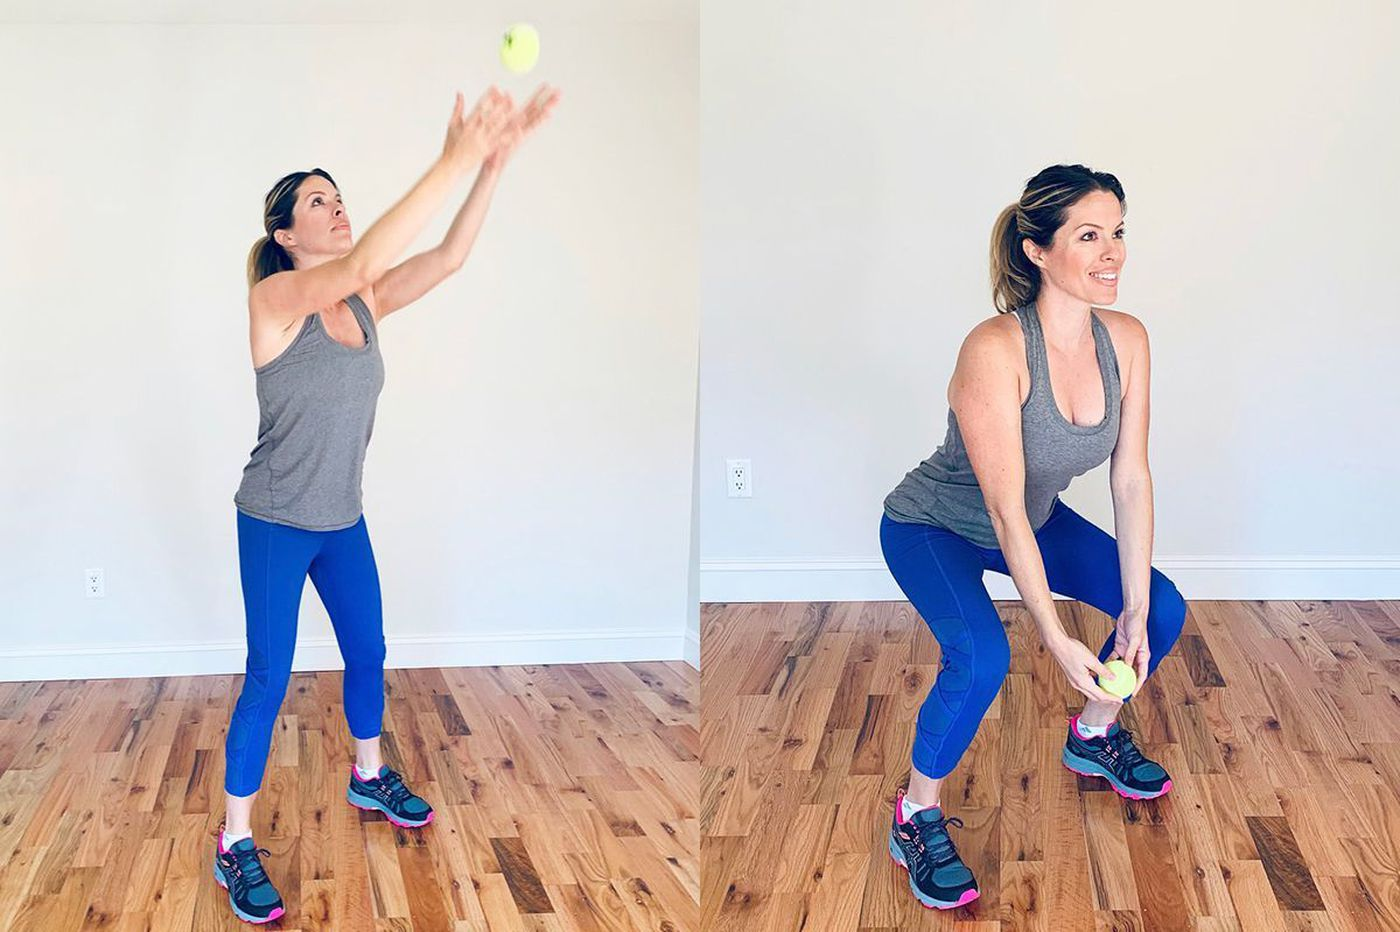 Transform your home into a gym using only a tennis ball